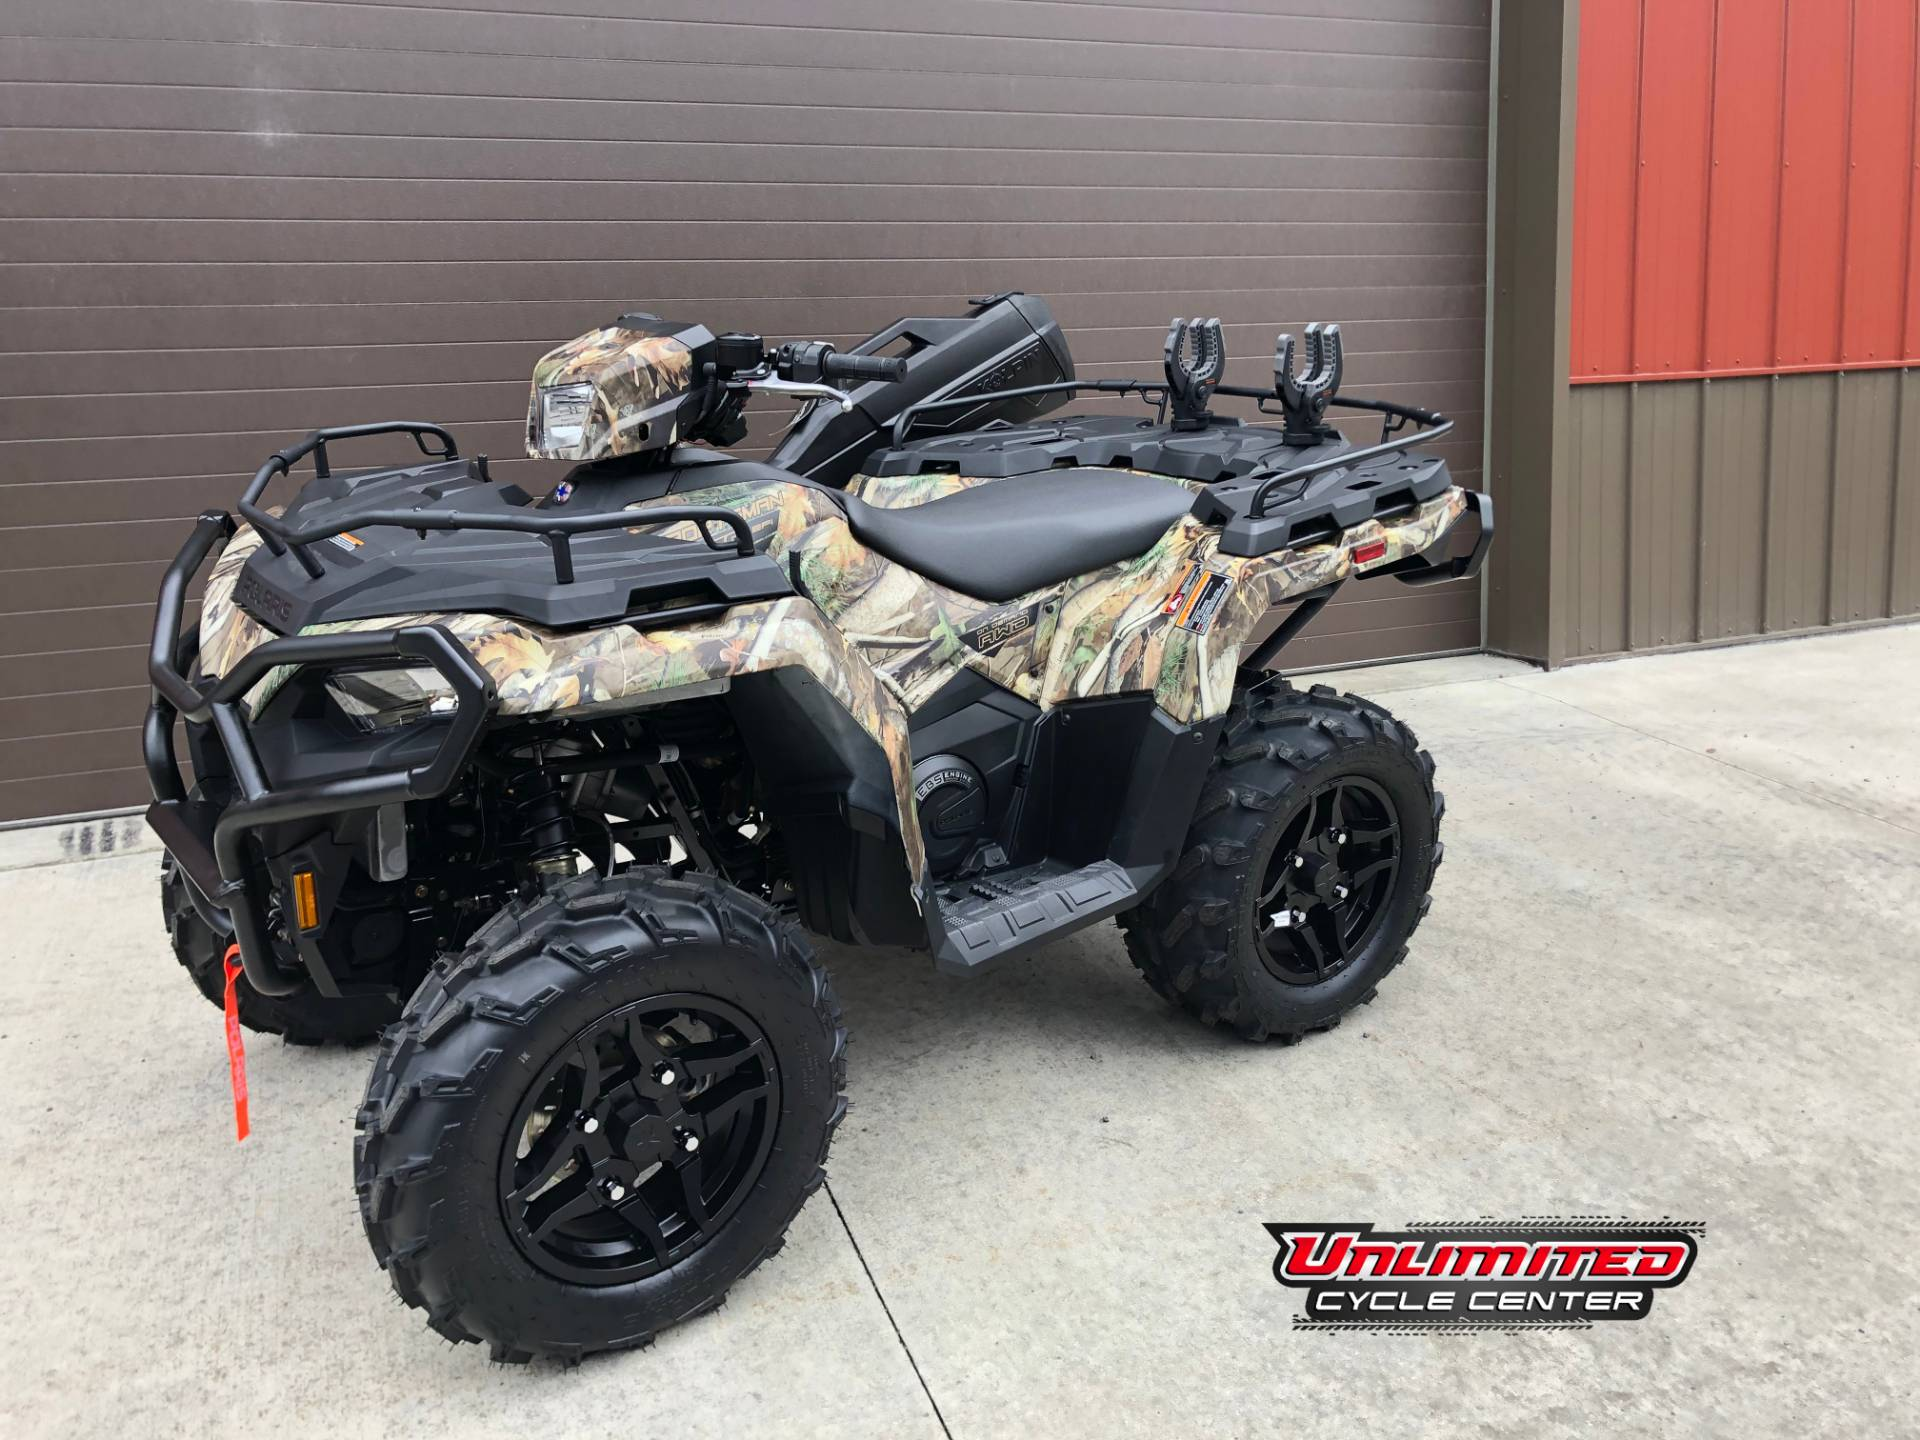 2021 Polaris Sportsman 570 Hunt Edition in Tyrone, Pennsylvania - Photo 1